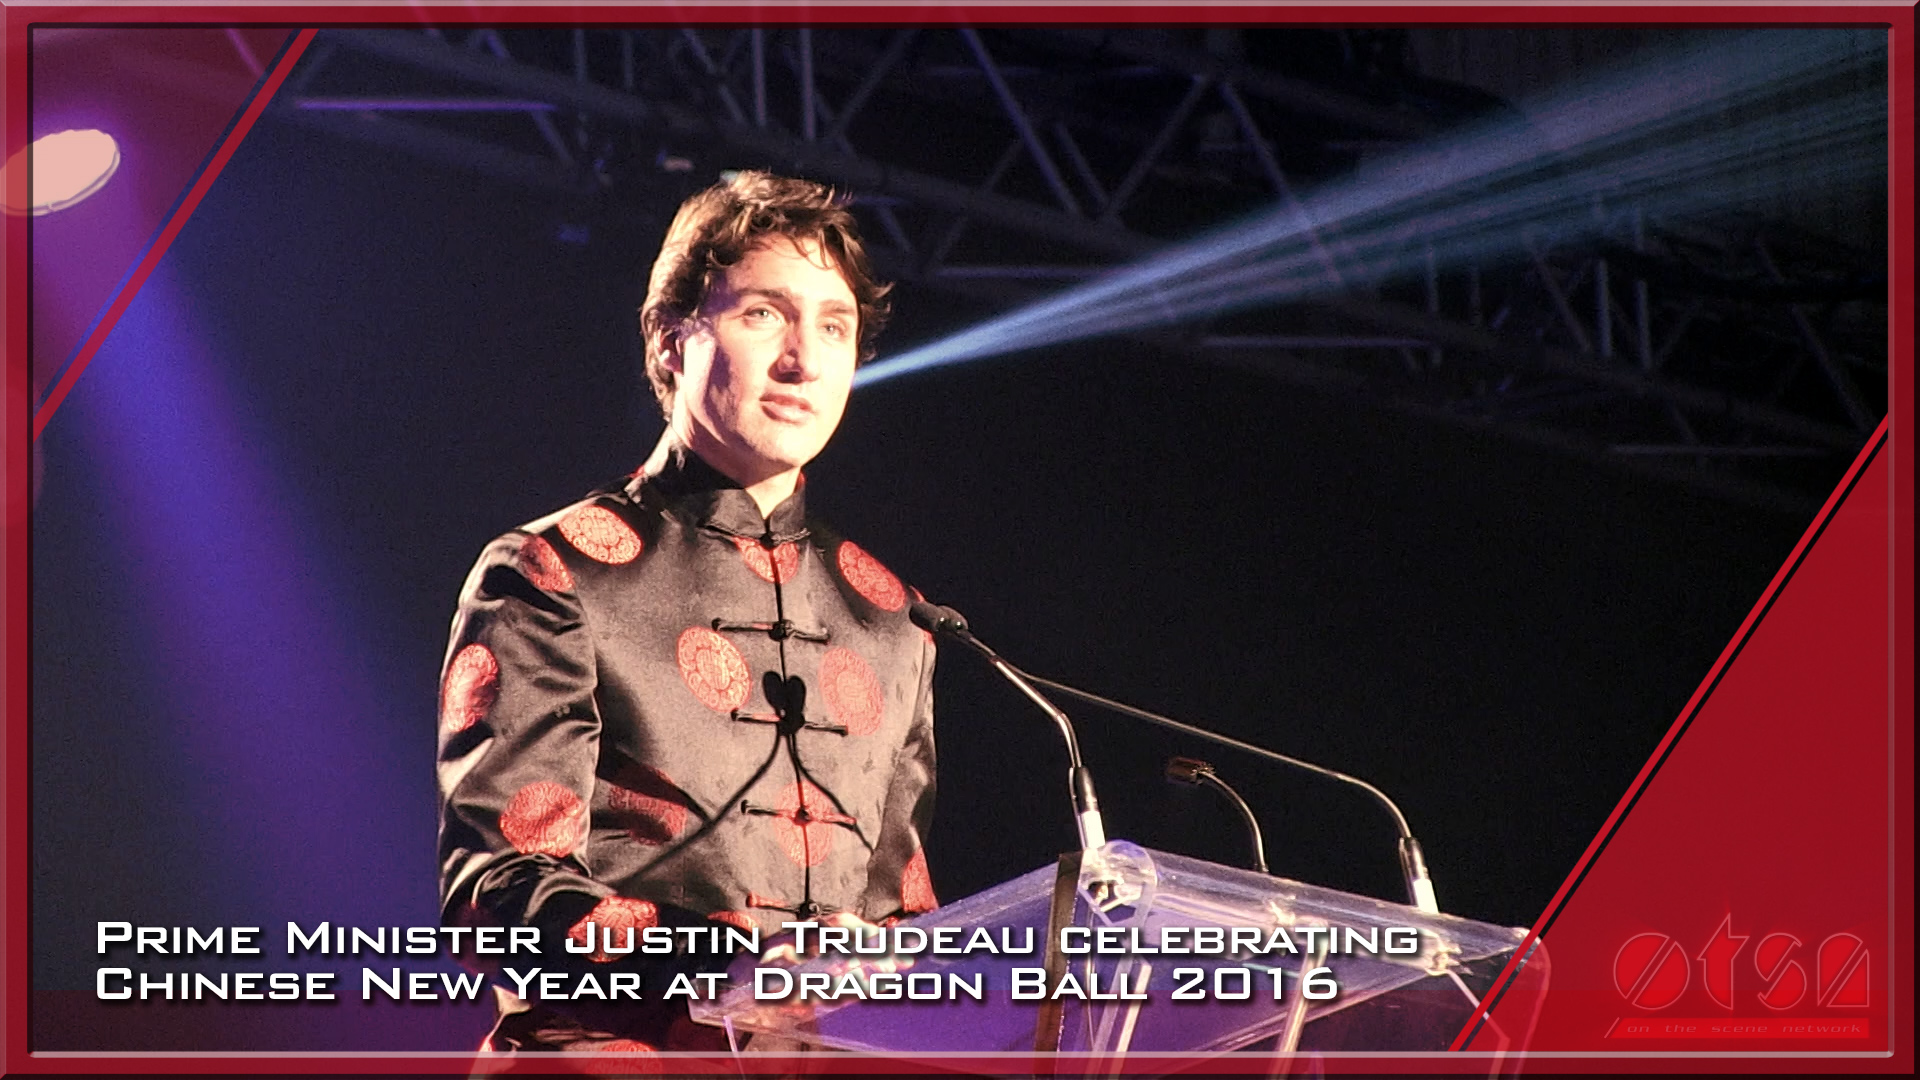 Justin Trudeau celebrating Chinese New Year at Dragon Ball 2016